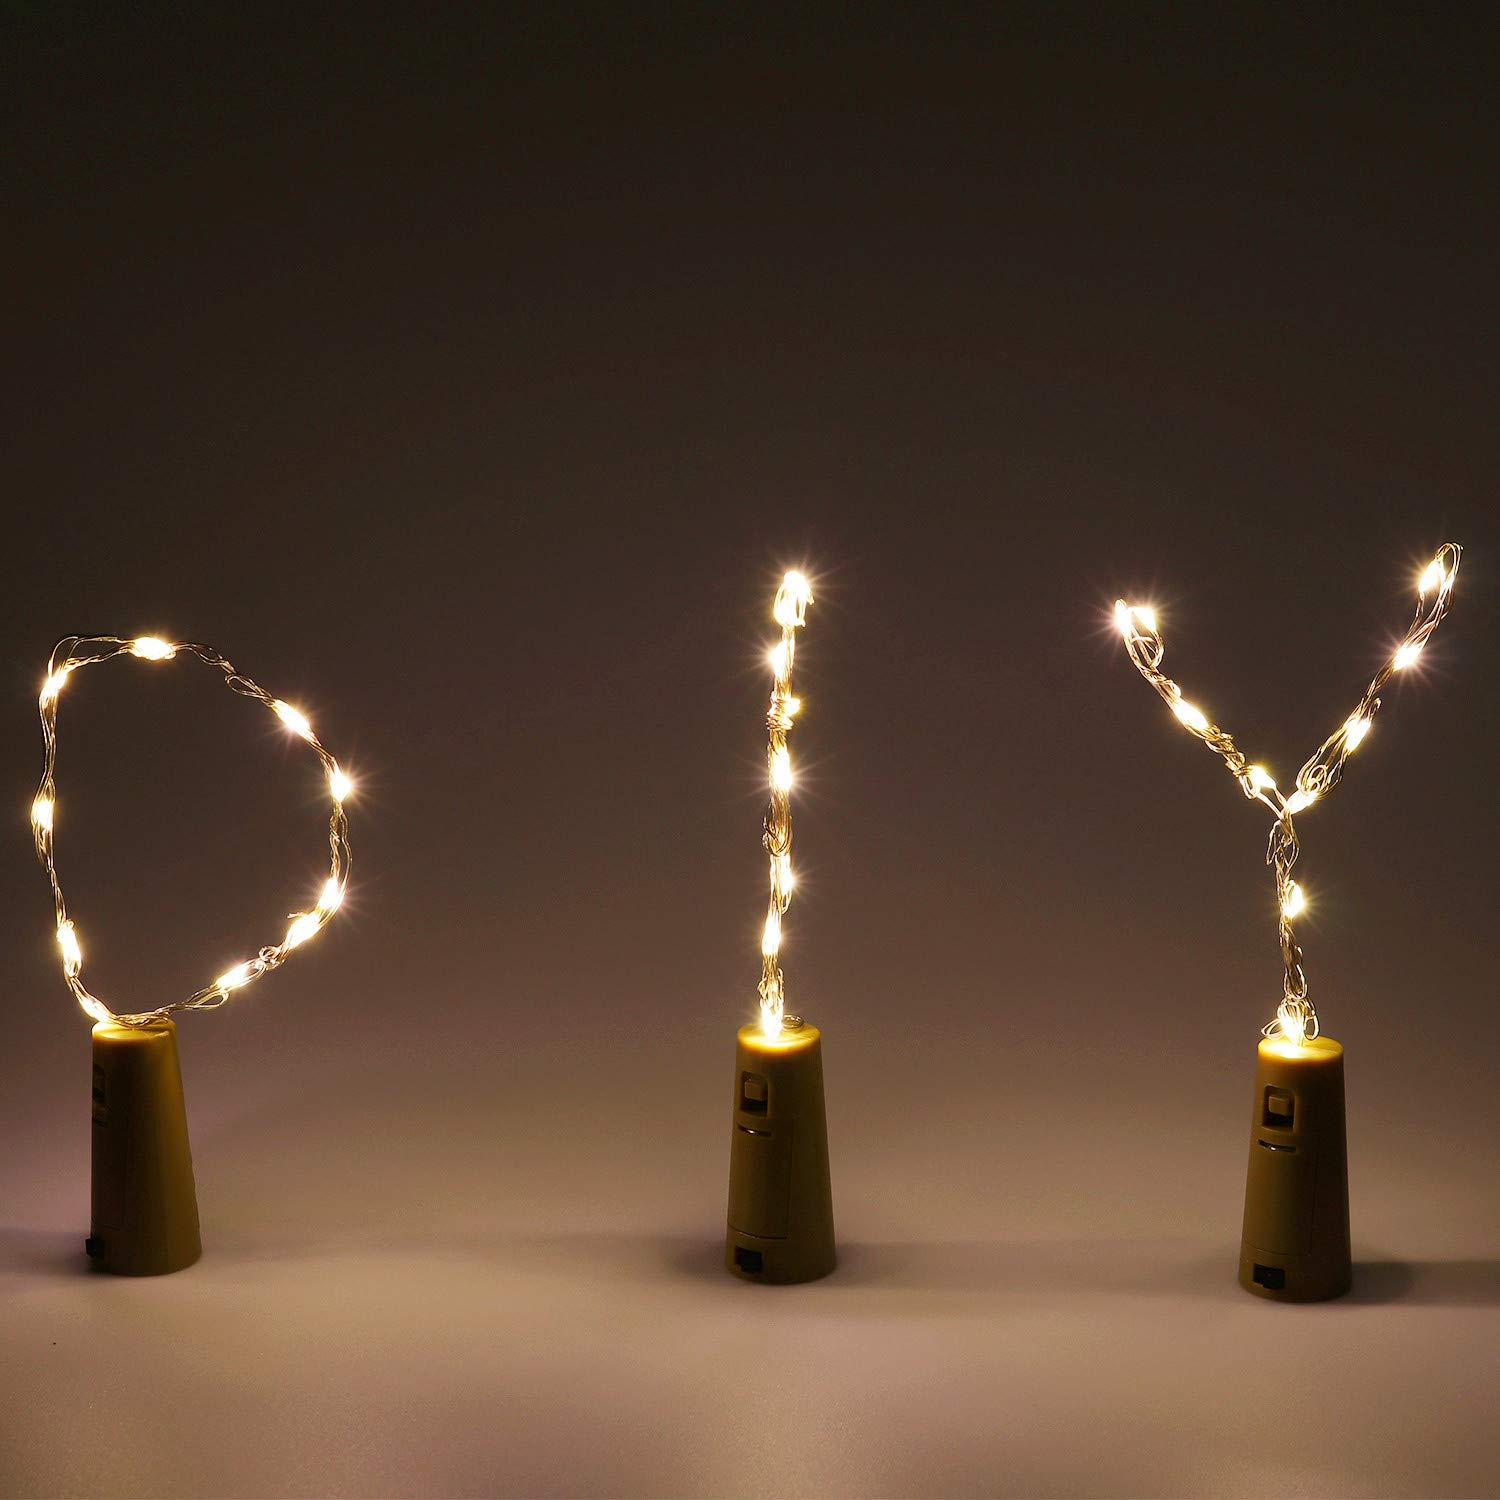 Party DIY Waterproof Wine Bottle Lights with Cork for Wedding Birthday(4 Colors) Happyhobby 12 Pack Bottle Cork Lights Battery Operated 10 LED Succulents Decorations Lights